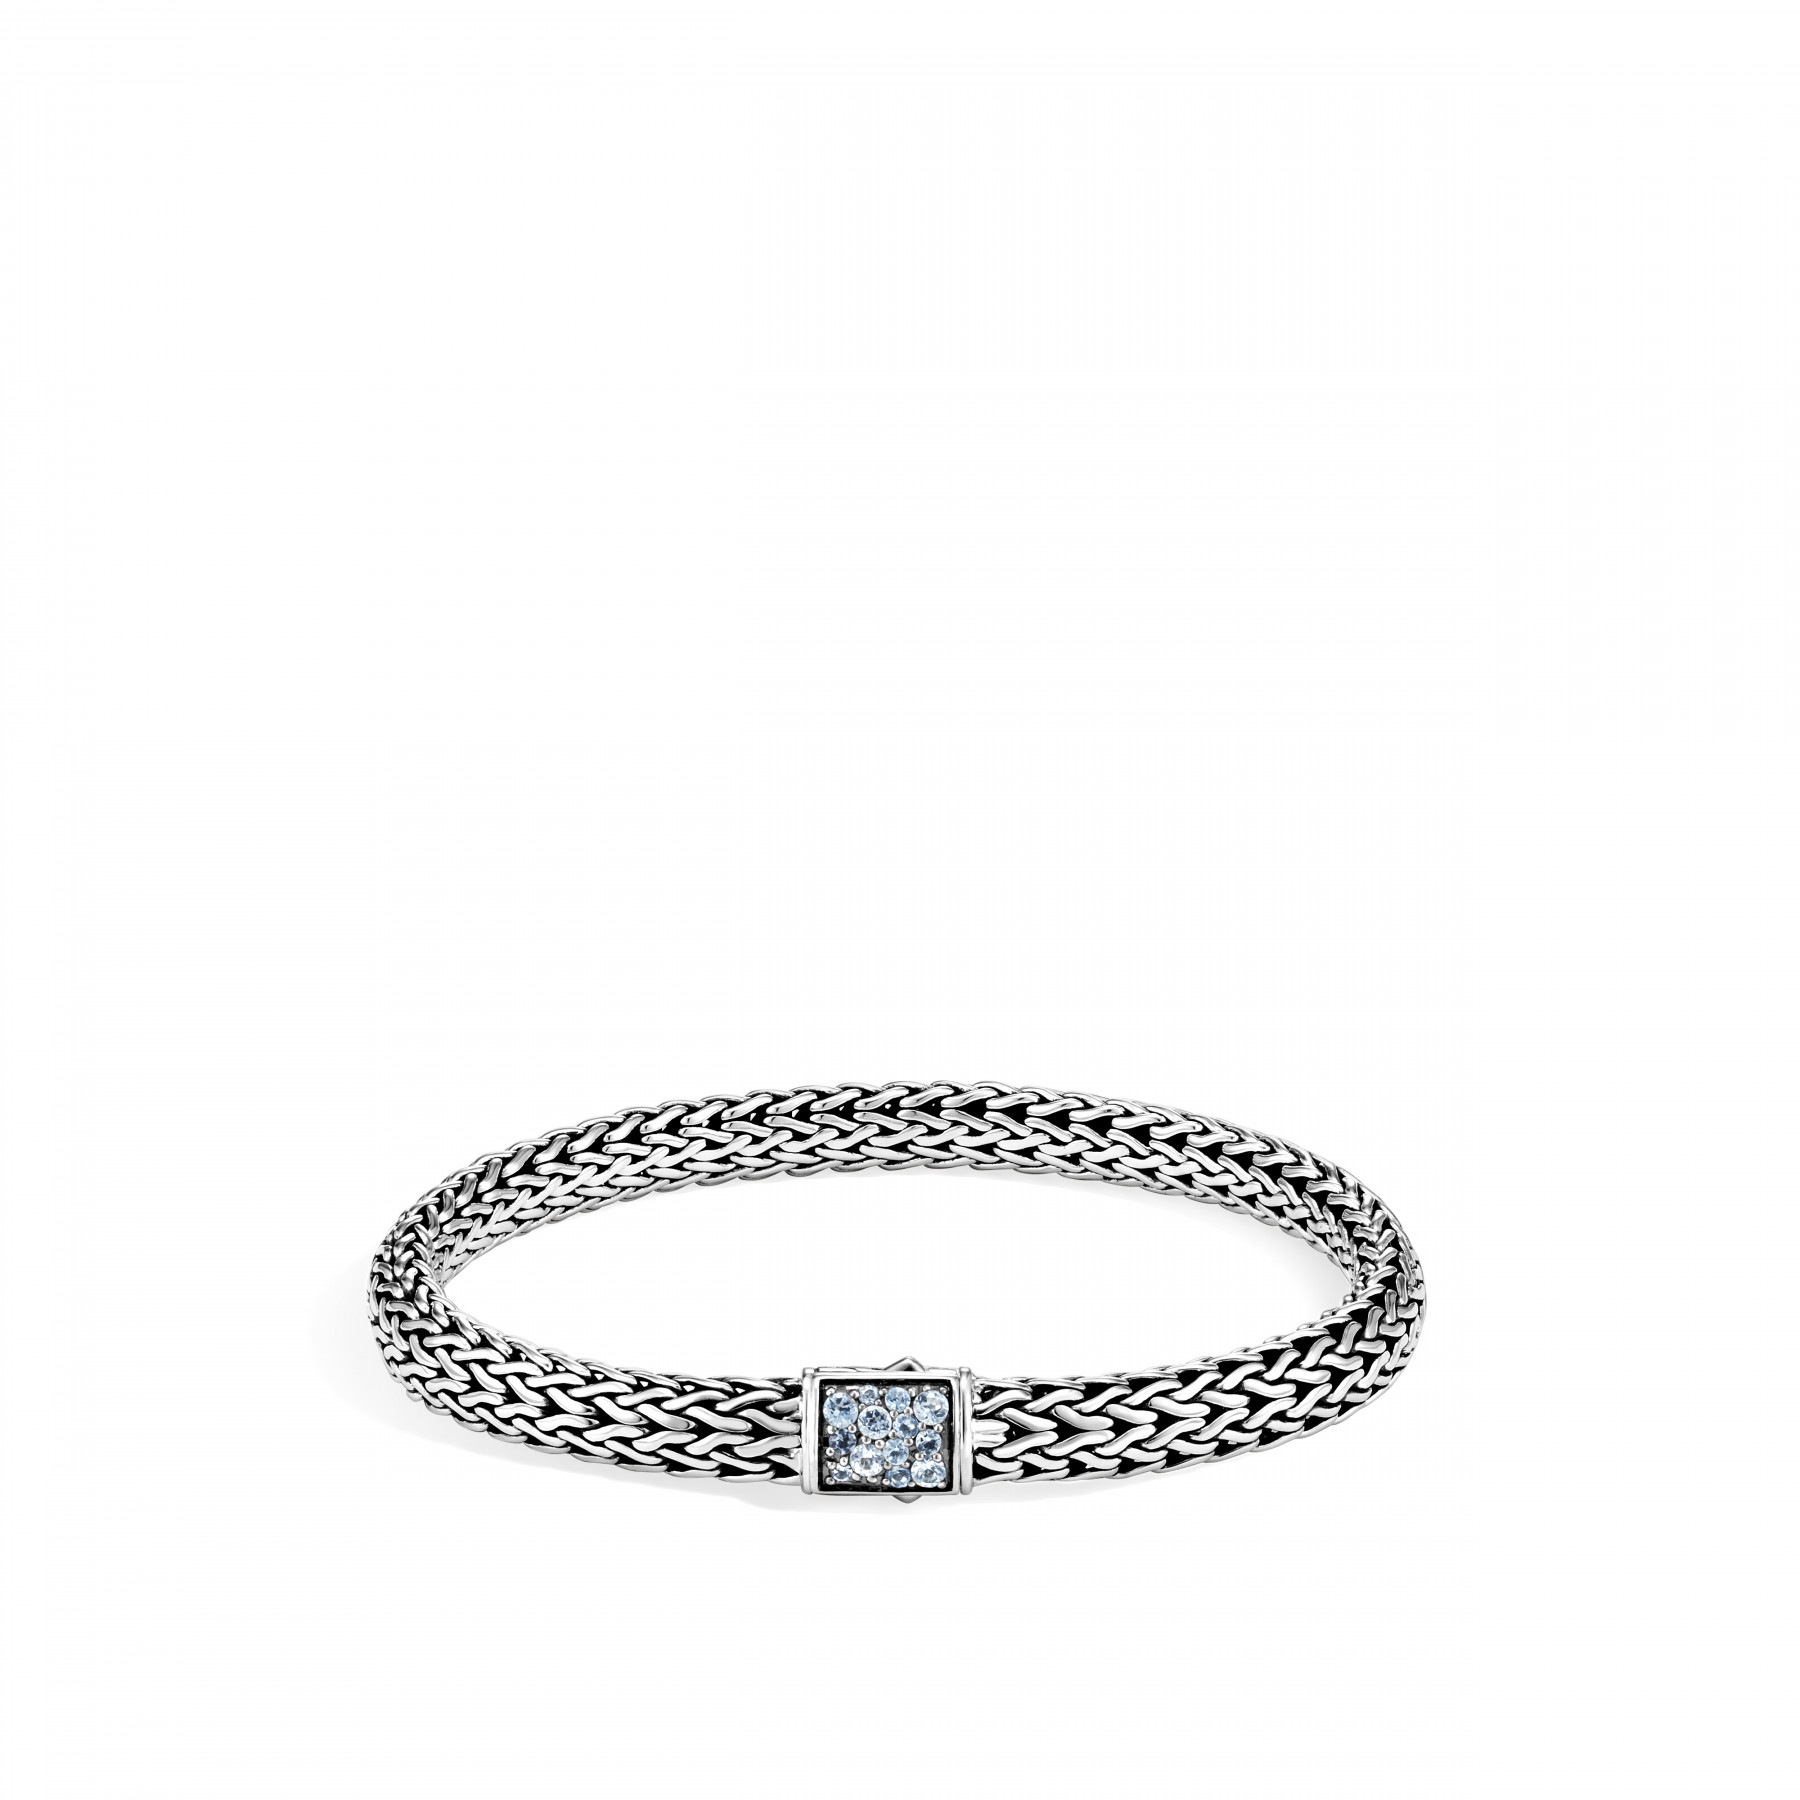 John Hardy Classic Chain Diamond and Aquamarine Bracelet - 6.5MM FRONT IMAGE